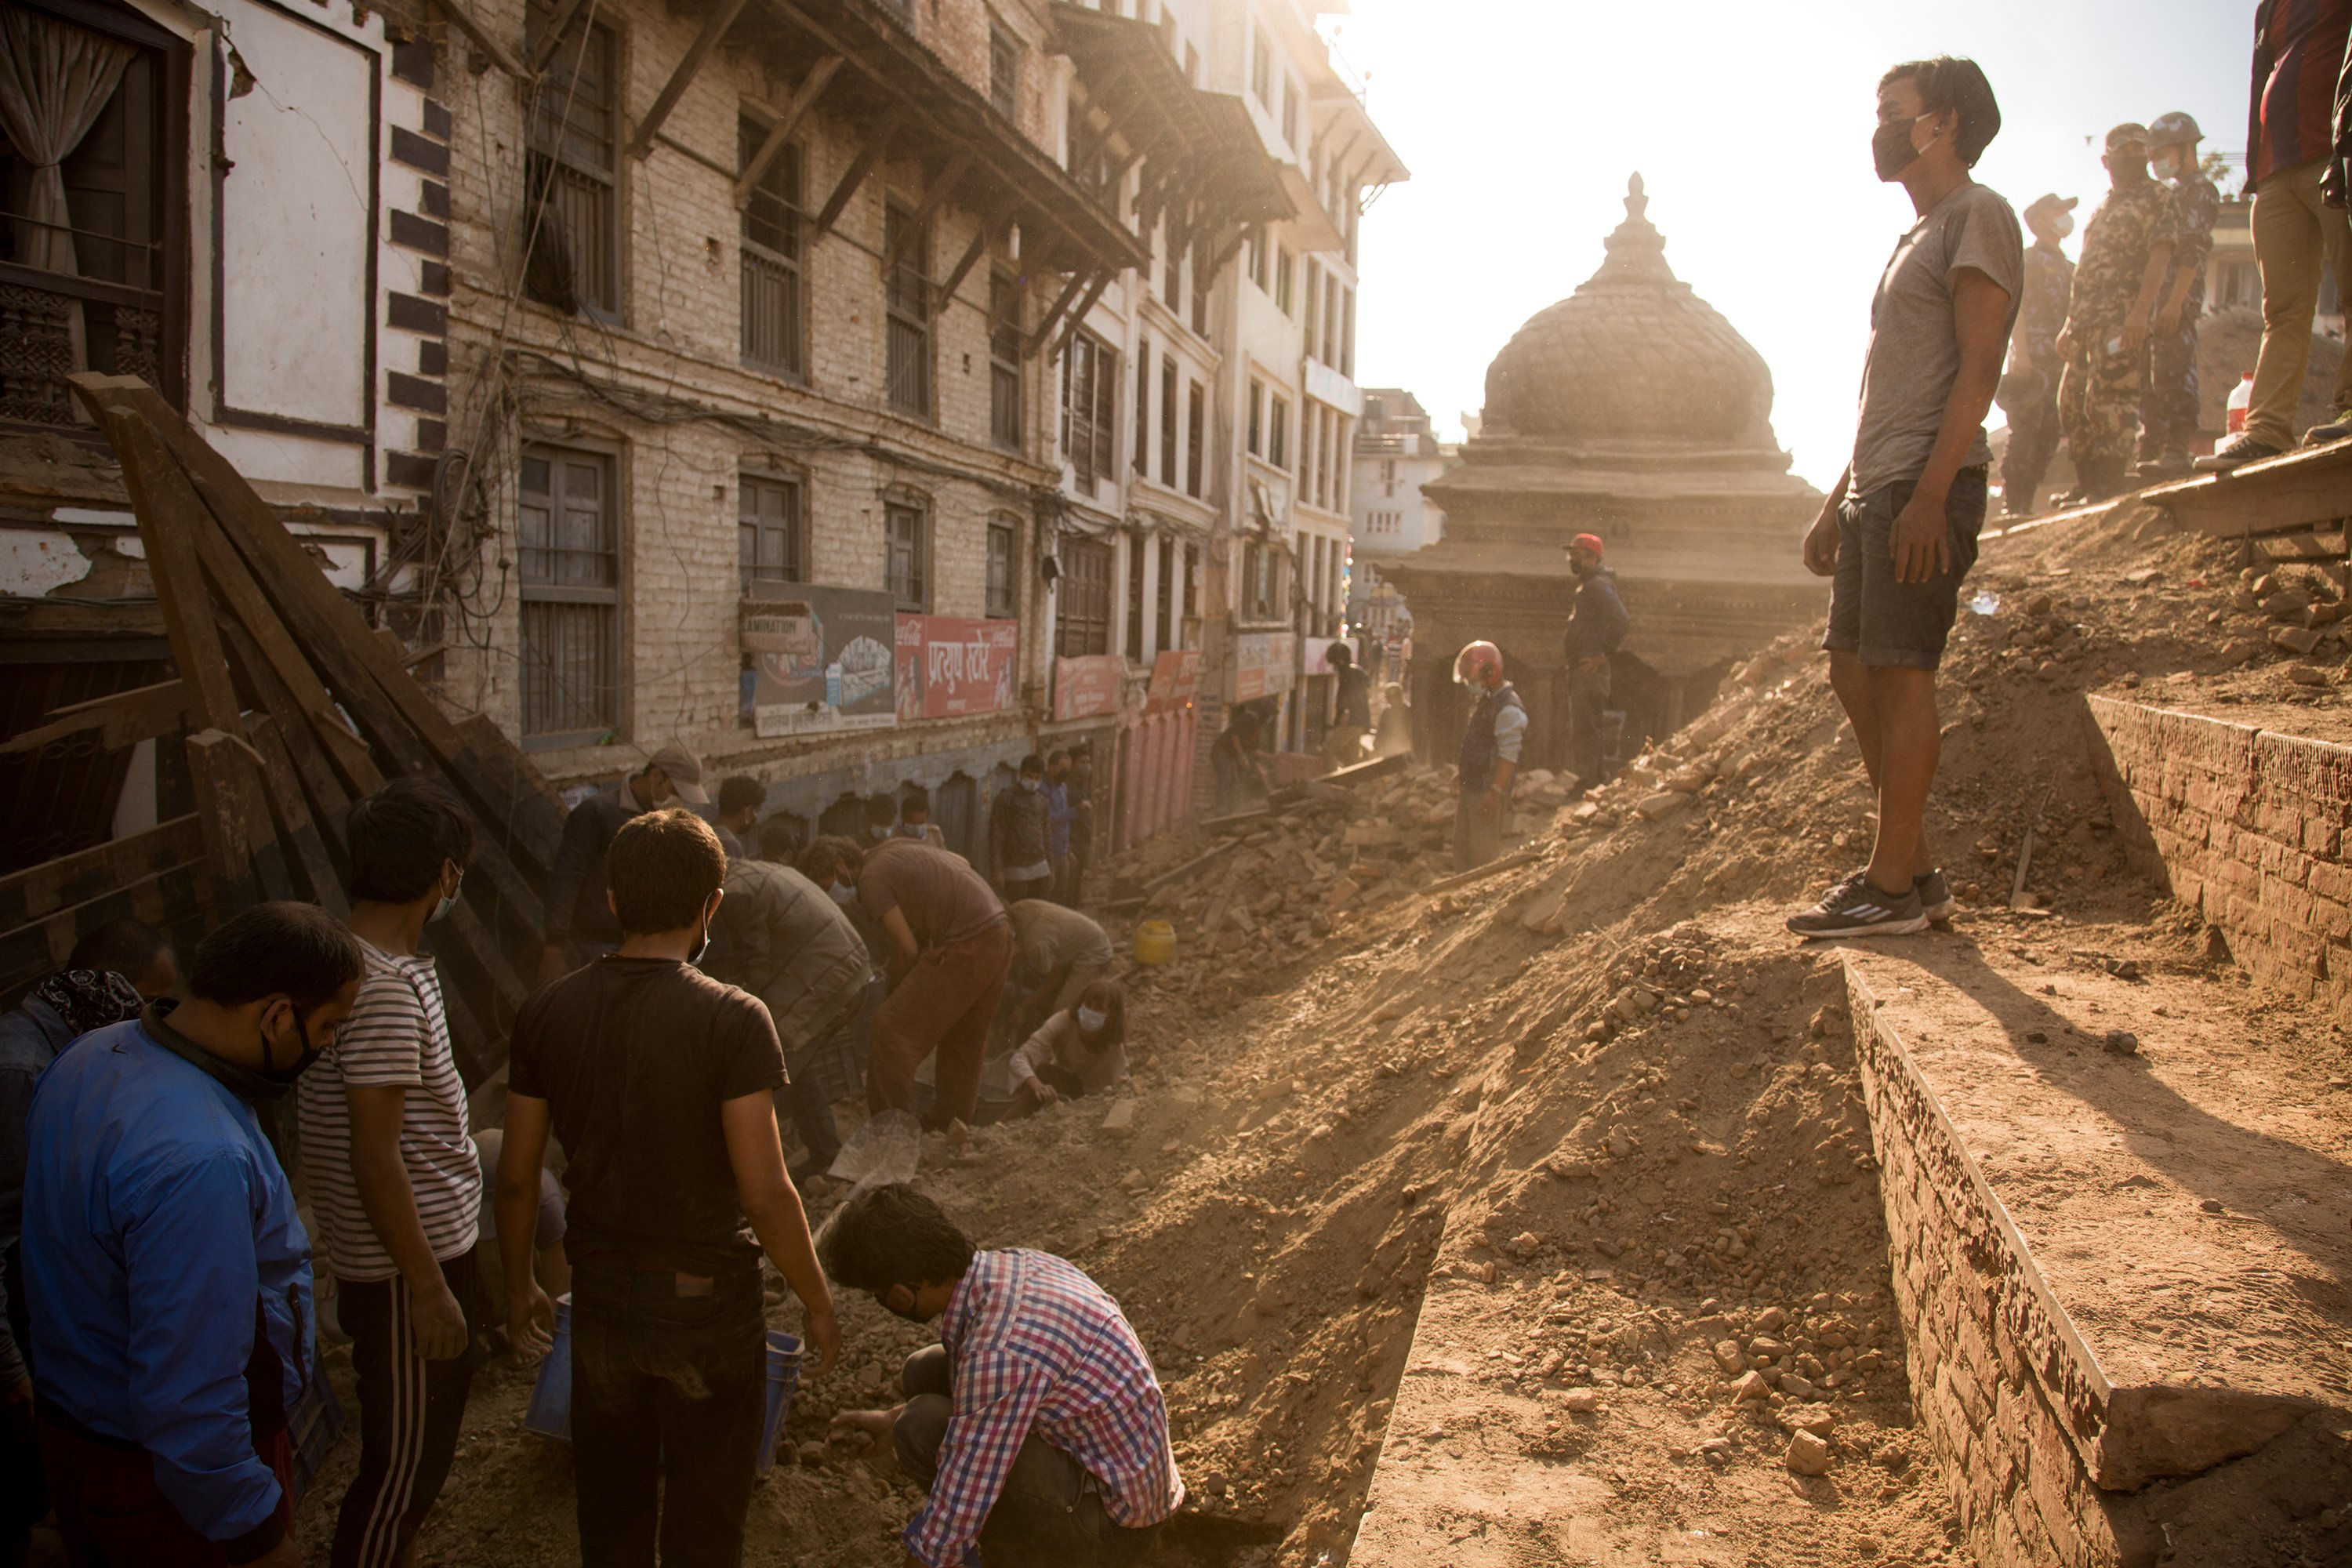 People dig through the rubble of destroyed buildings in Durbar Square in Kathmandu on Monday, April 27th, 2015, two days after an earthquake struck  the Nepali capital killing more than 3,000 people. (Jim Seida / NBC News)